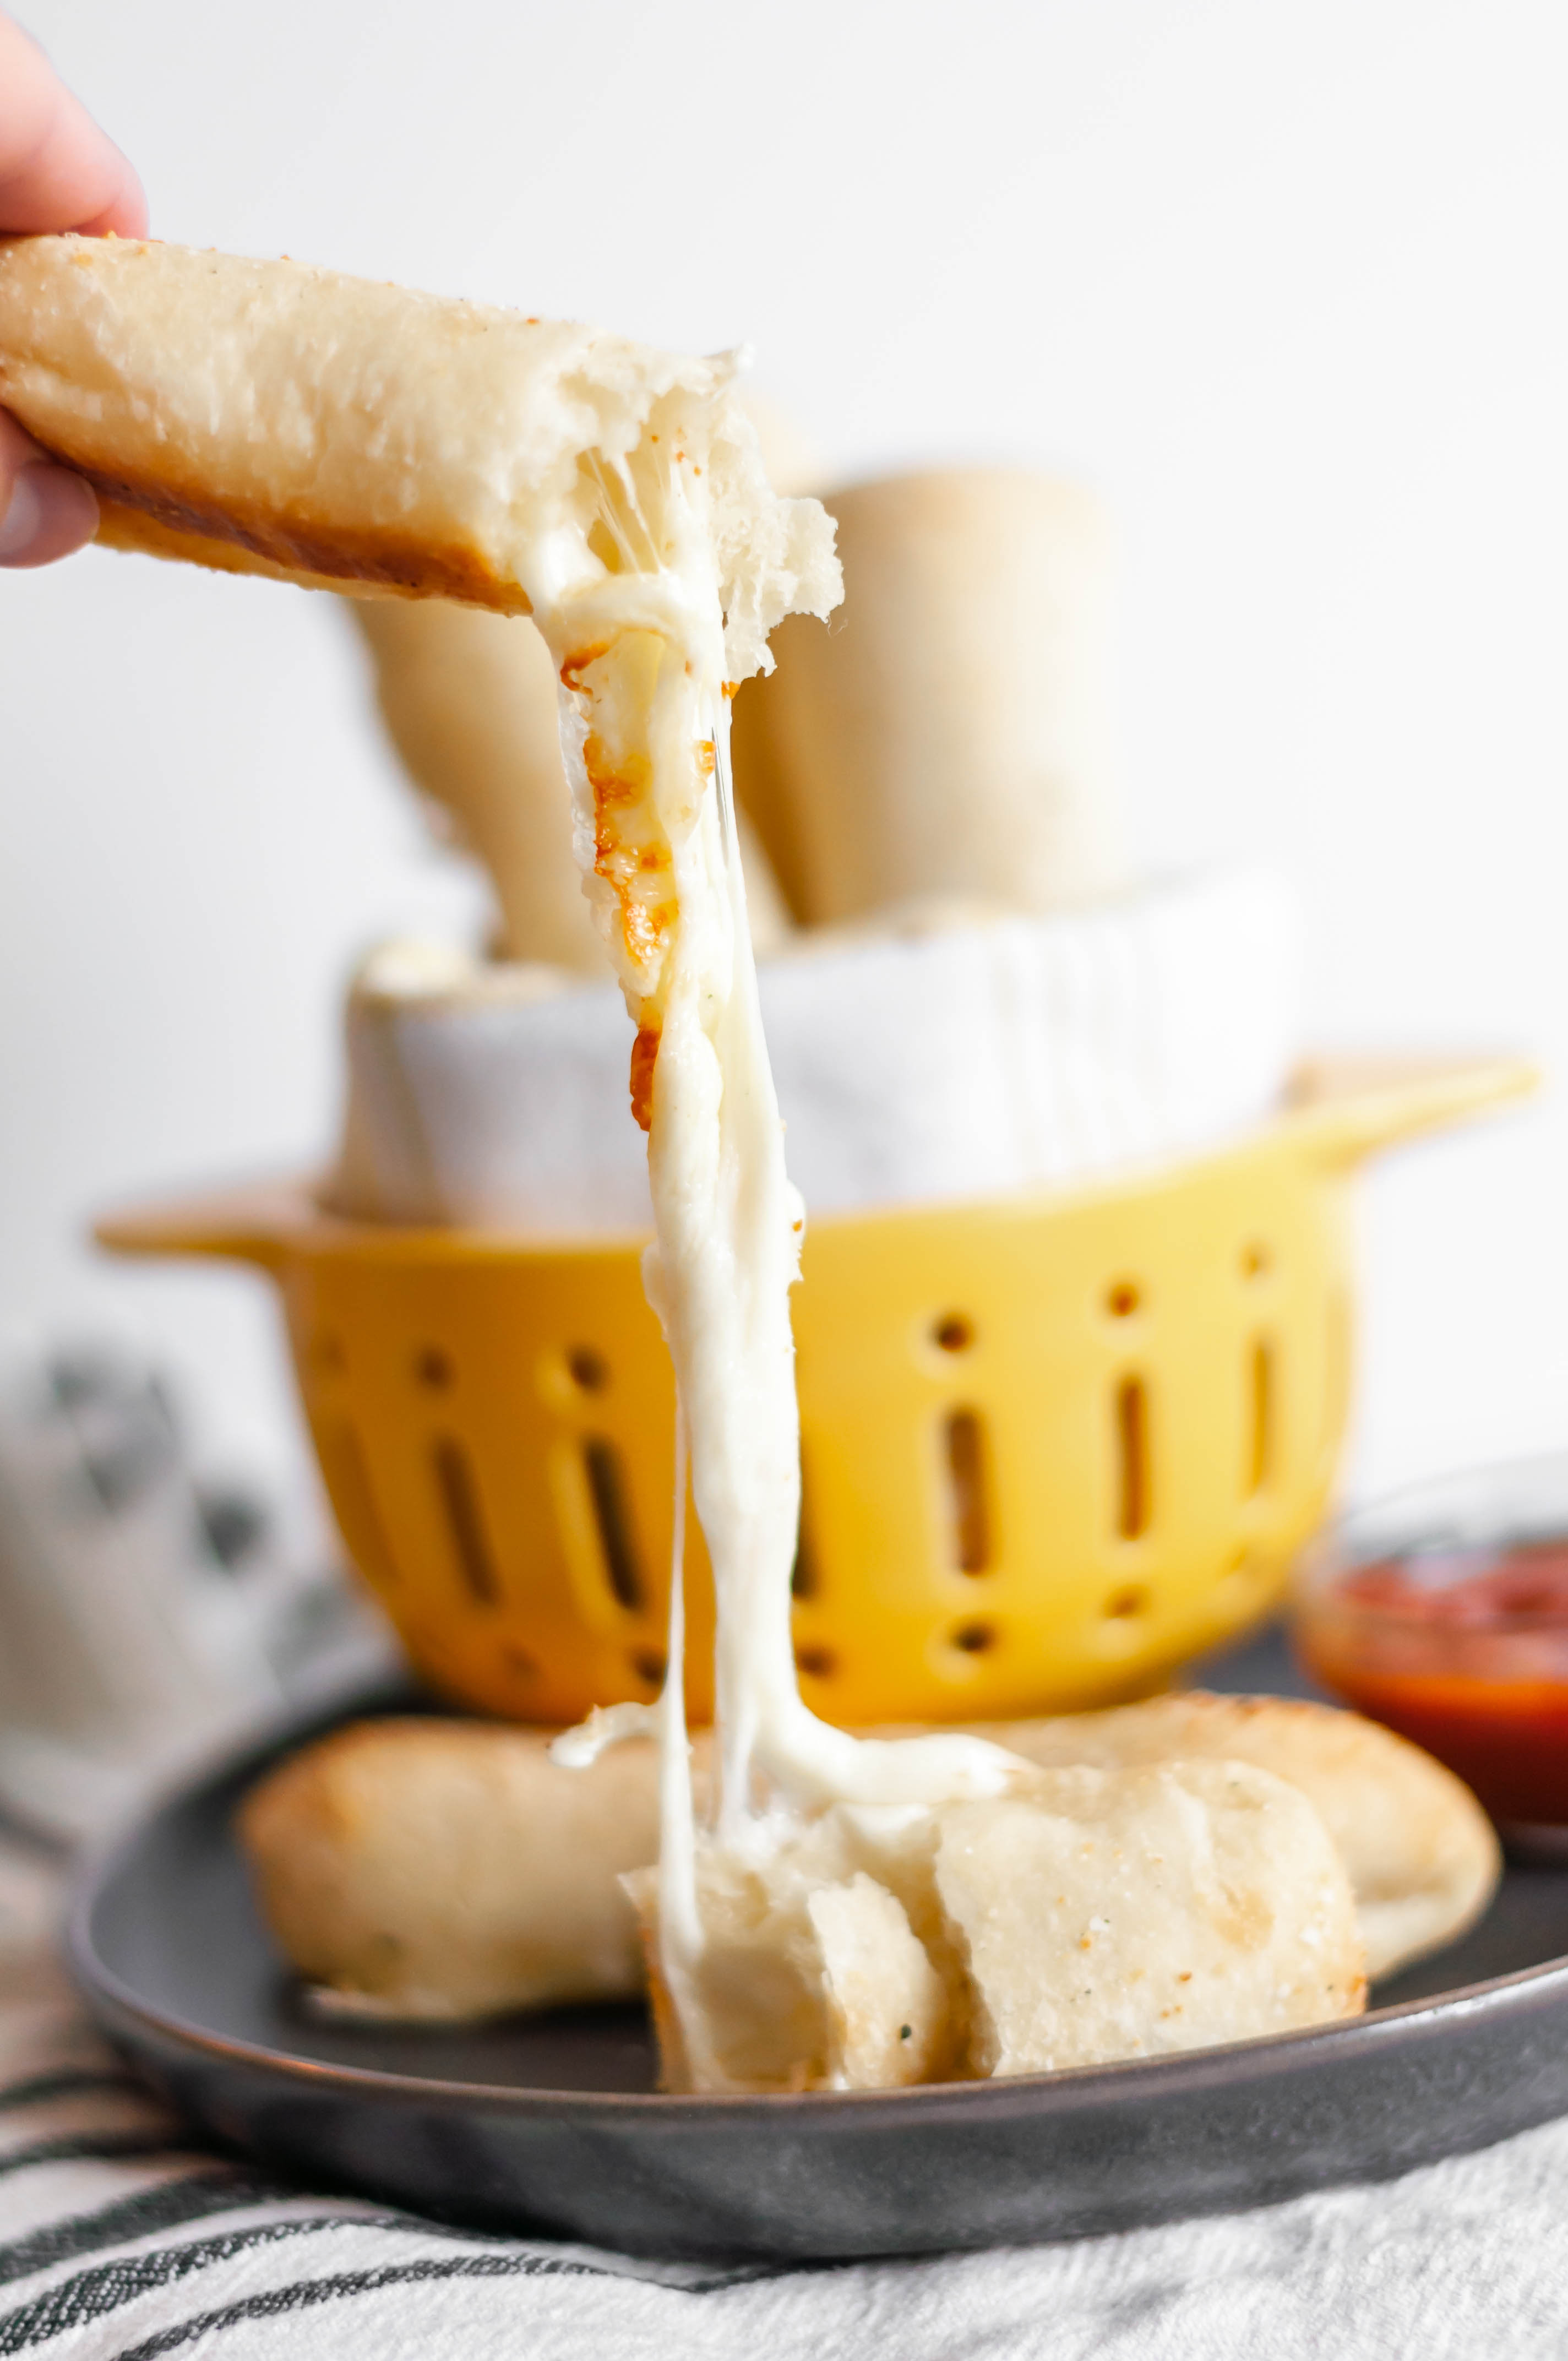 Cheese Stuffed Breadsticks are a super simple side for your soup or pasta this fall. Only 4 ingredients and less than 30 minutes for these ooey gooey cheese breadsticks.